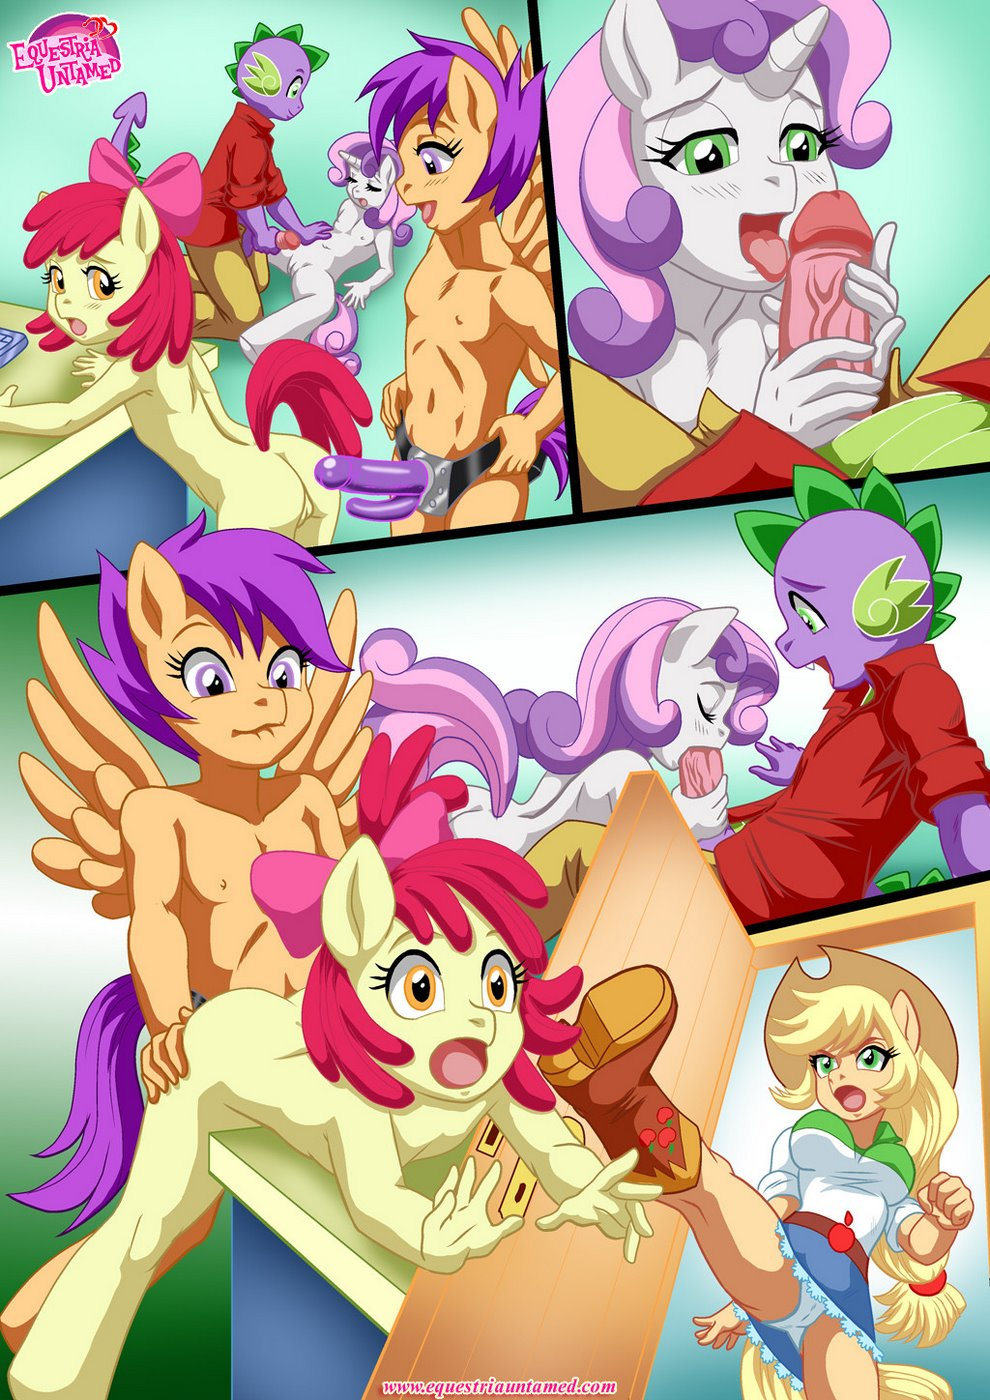 Also Rarity (My Little Pony)- Pal Comix